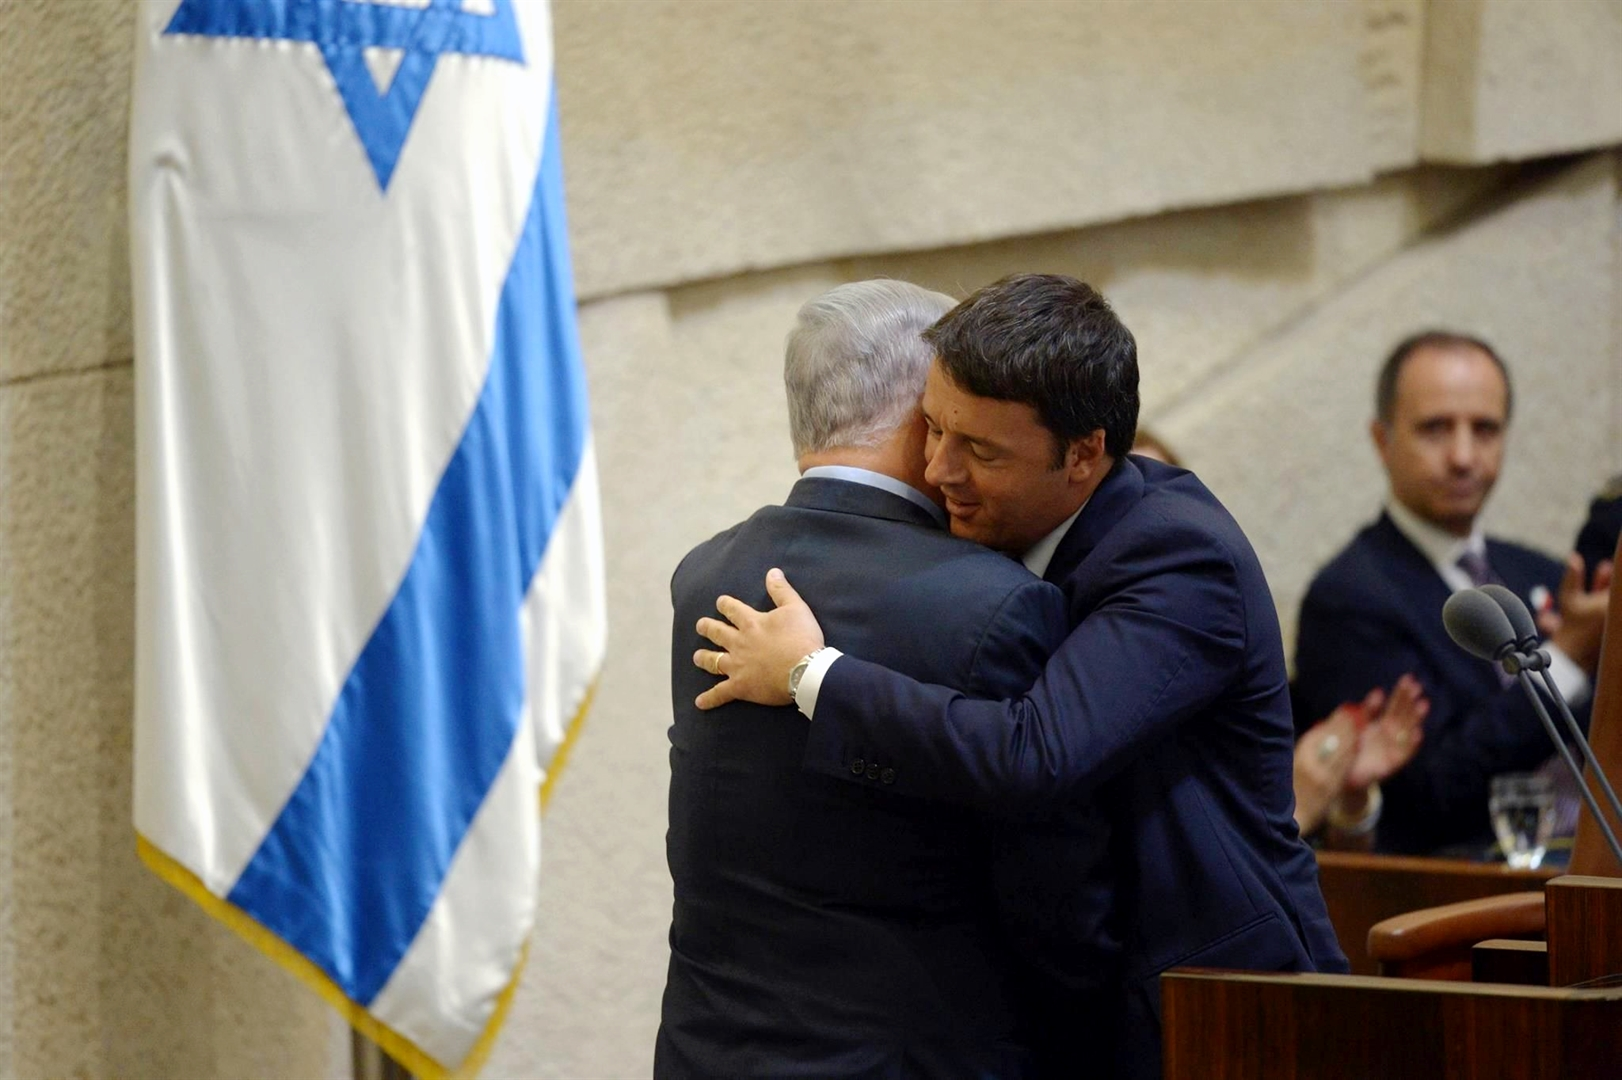 Prime Minister Benjamin Netanyahu and Italian Prime Minister hug warmly at a special Knesset session in honor of the Italian prime minister. (GPO photo by Amos Ben Gershom)